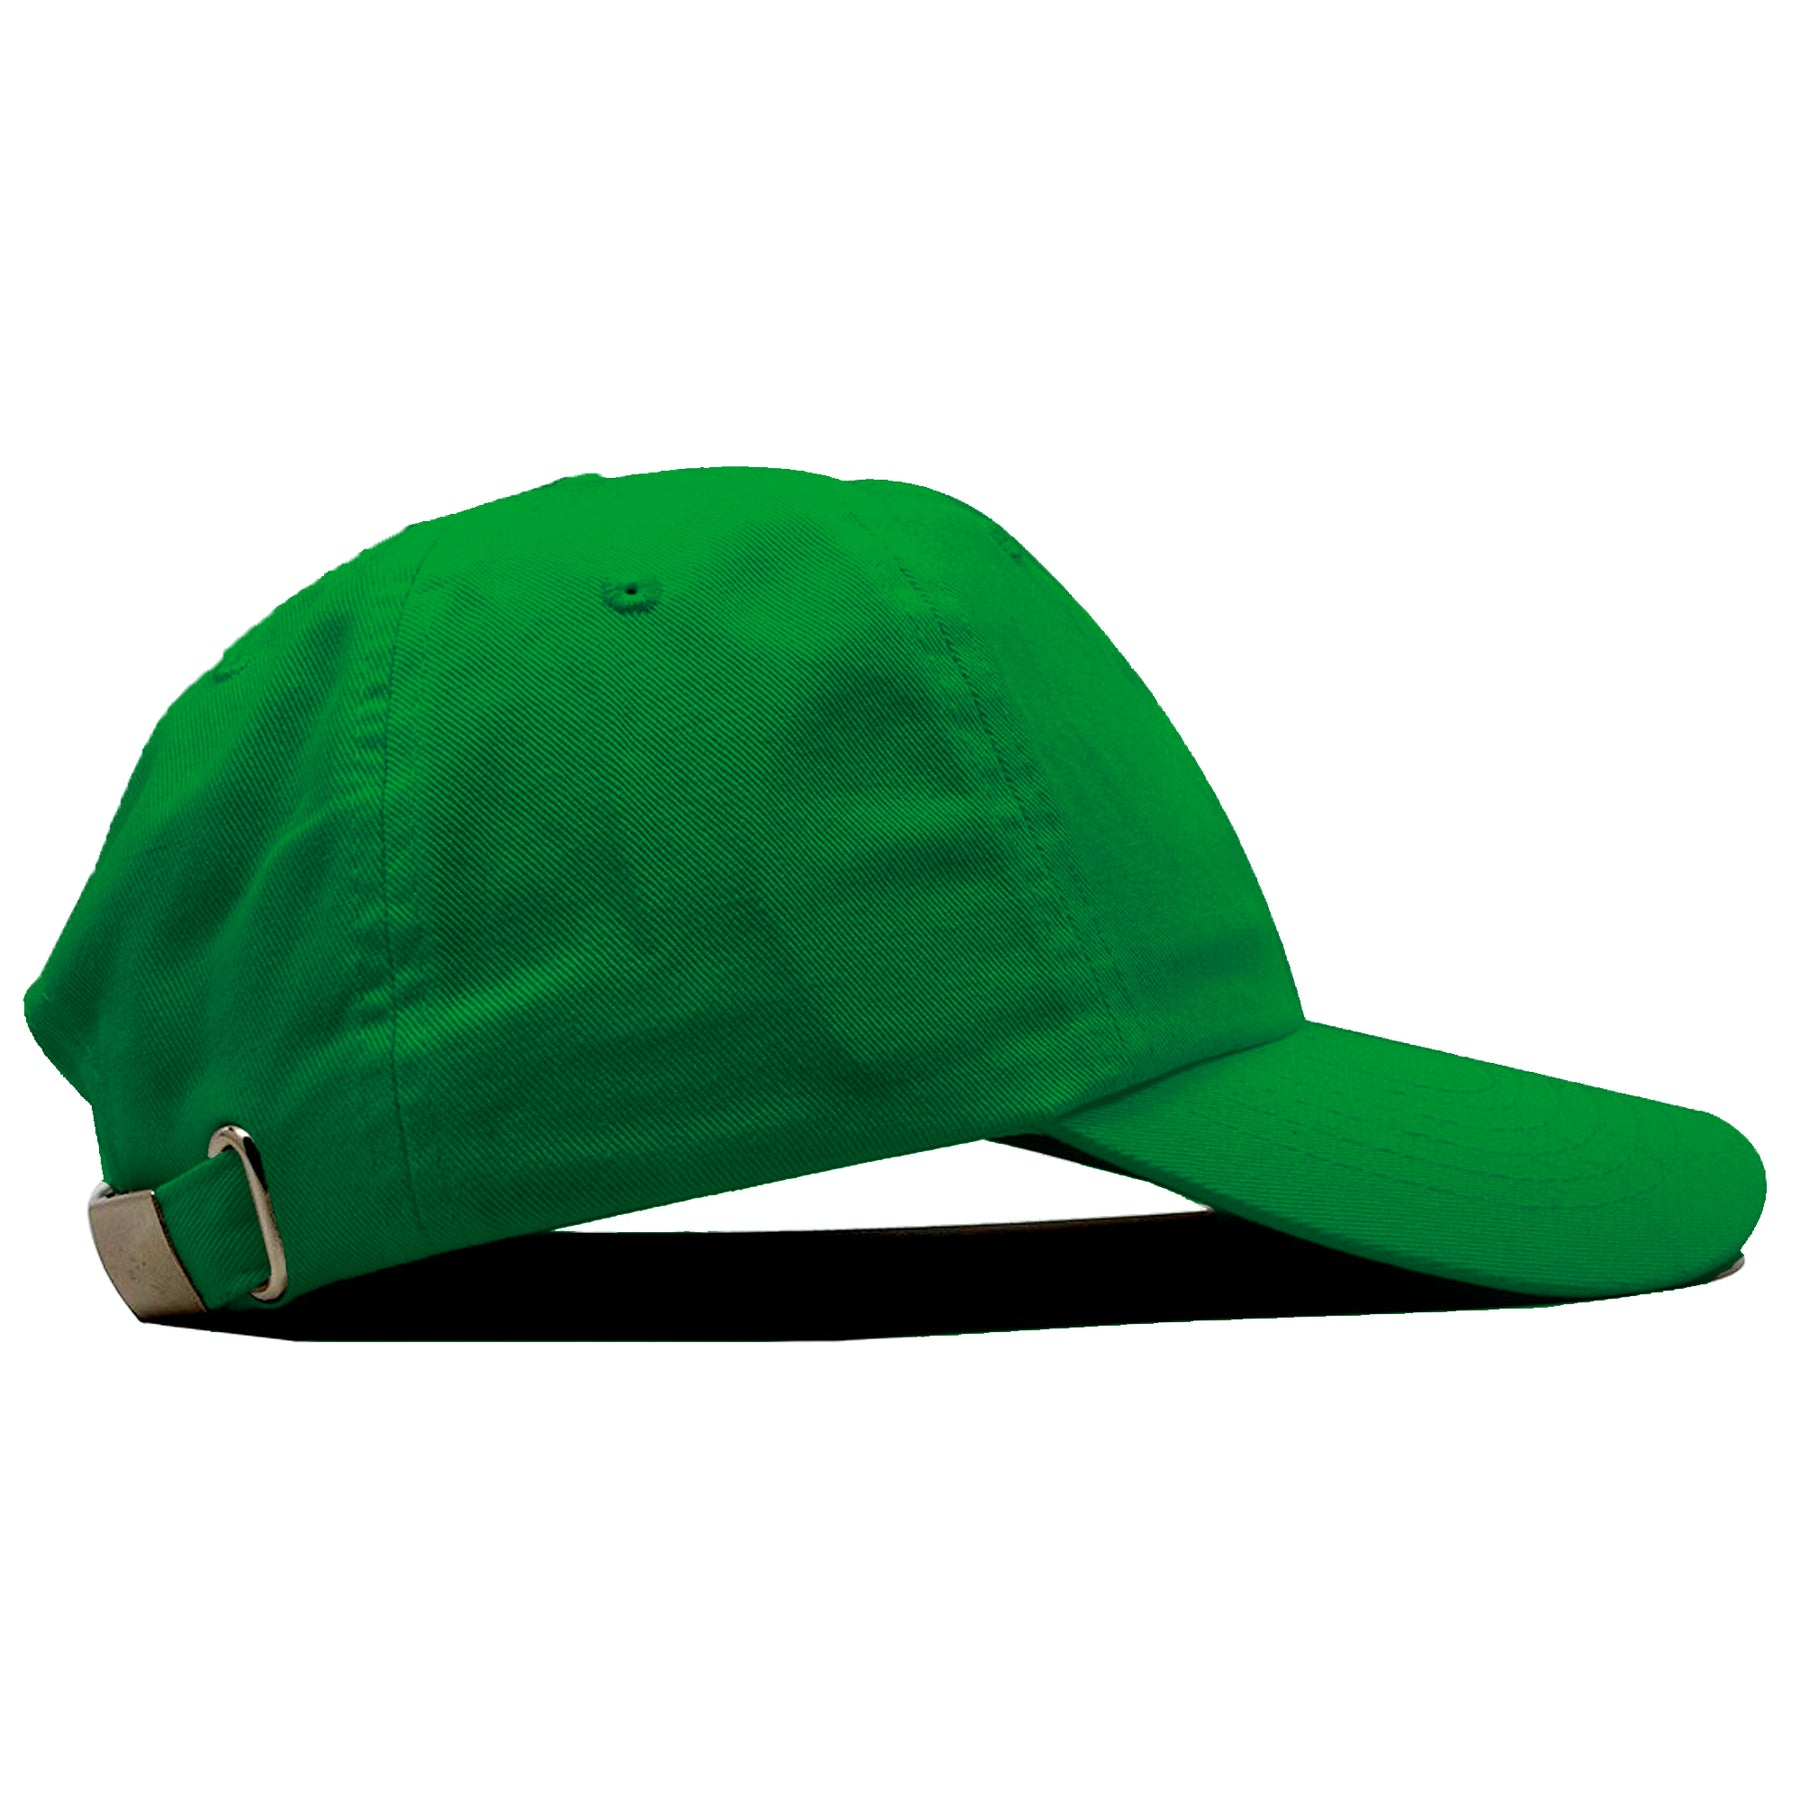 d72f4658e8576 ... The blank kelly green adjustable baseball cap fits a variety of head  sizes.